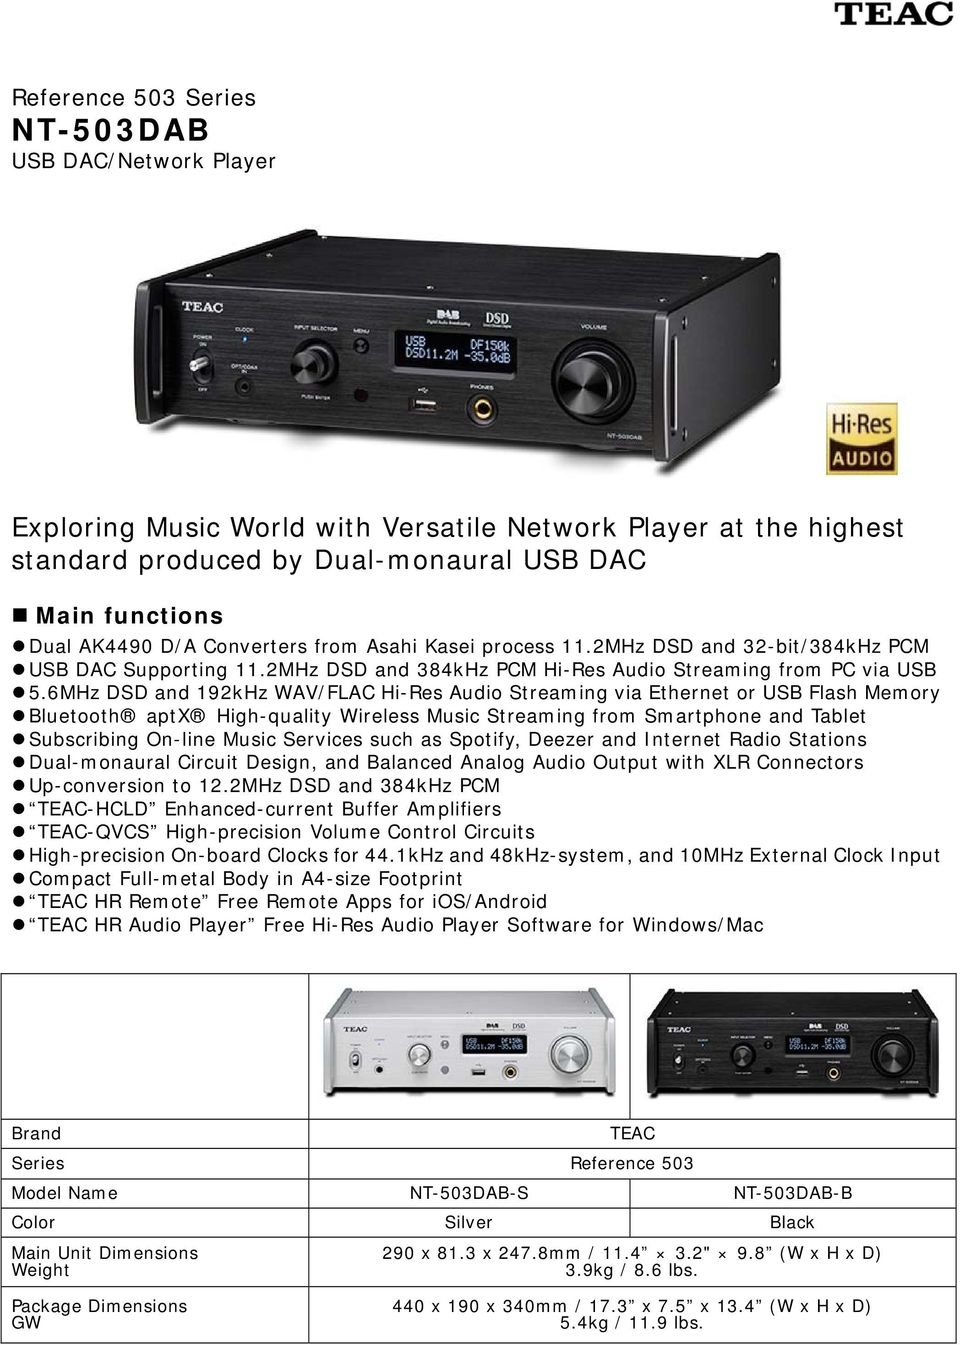 Exploring Music World with Versatile Network Player at the